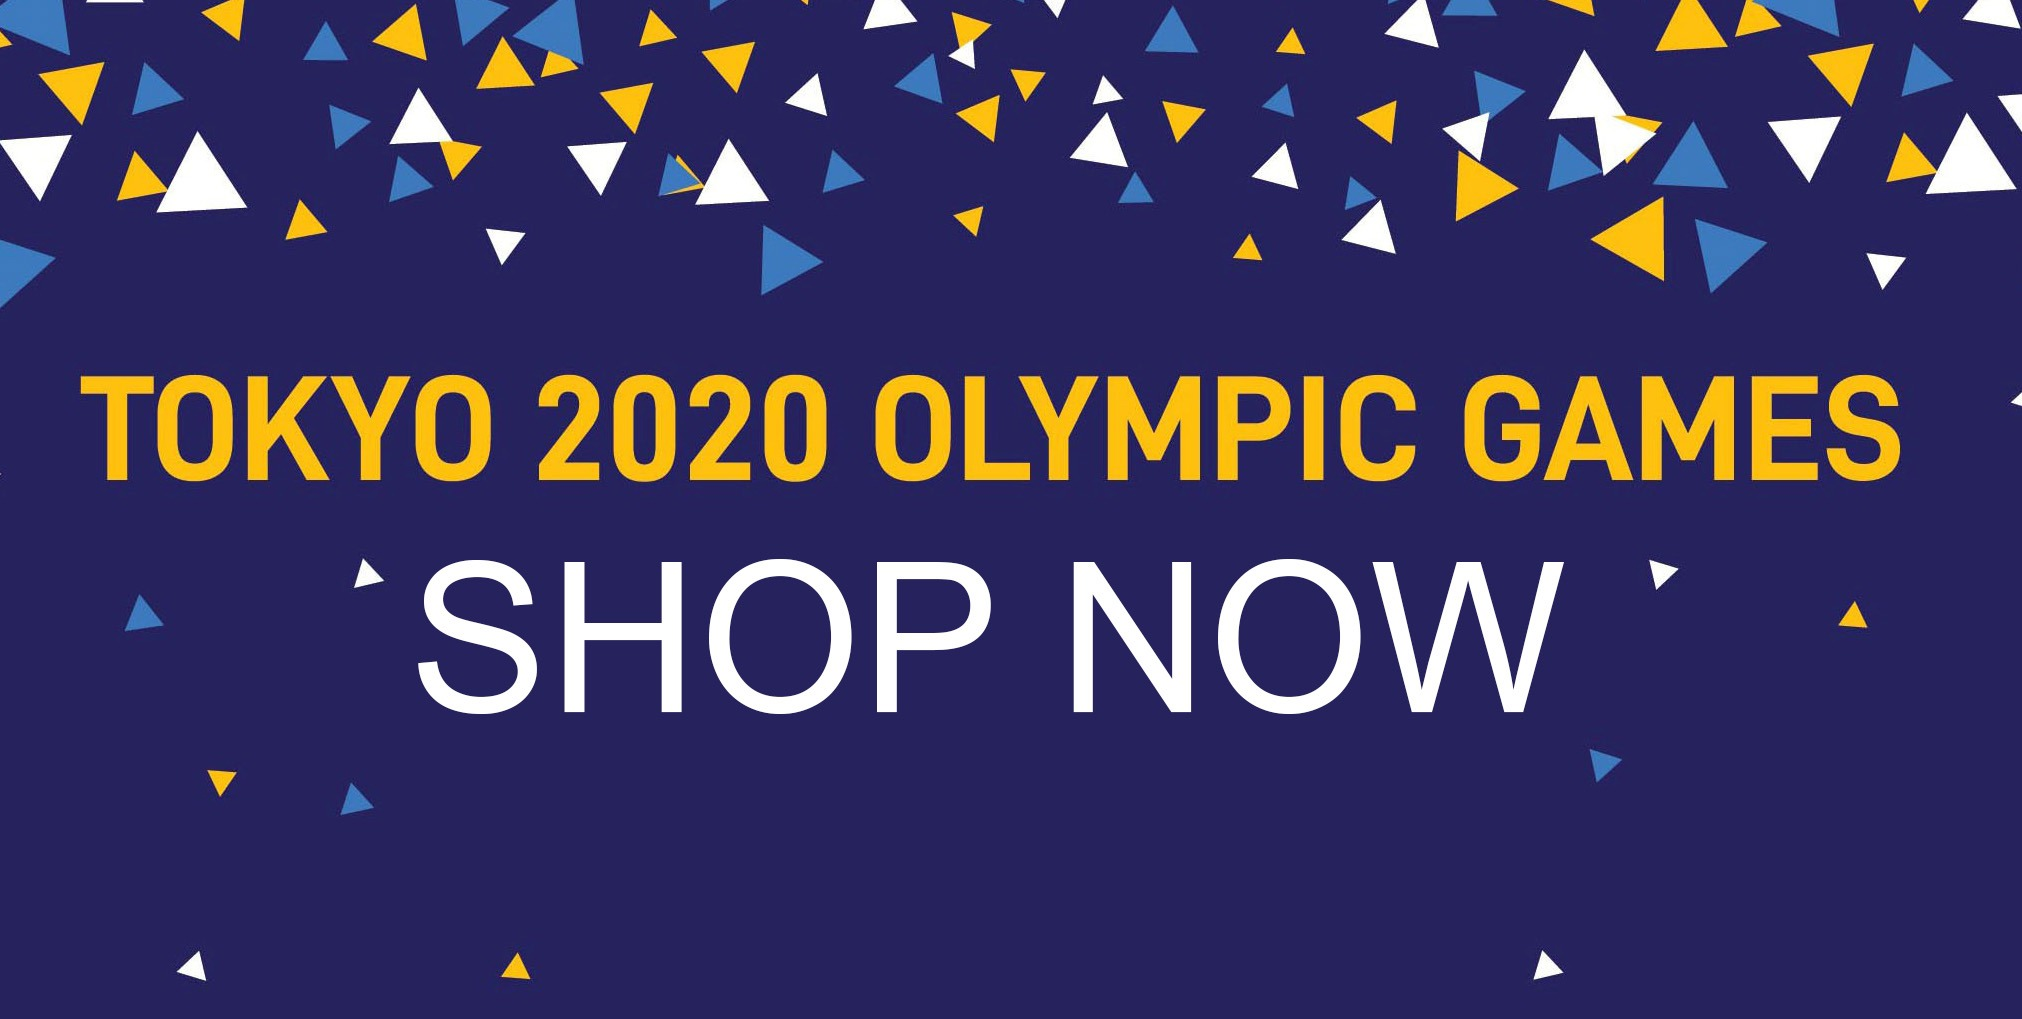 Games With Gold July 2020.Tokyo 2020 Olympic Games Kingdom Sports Group